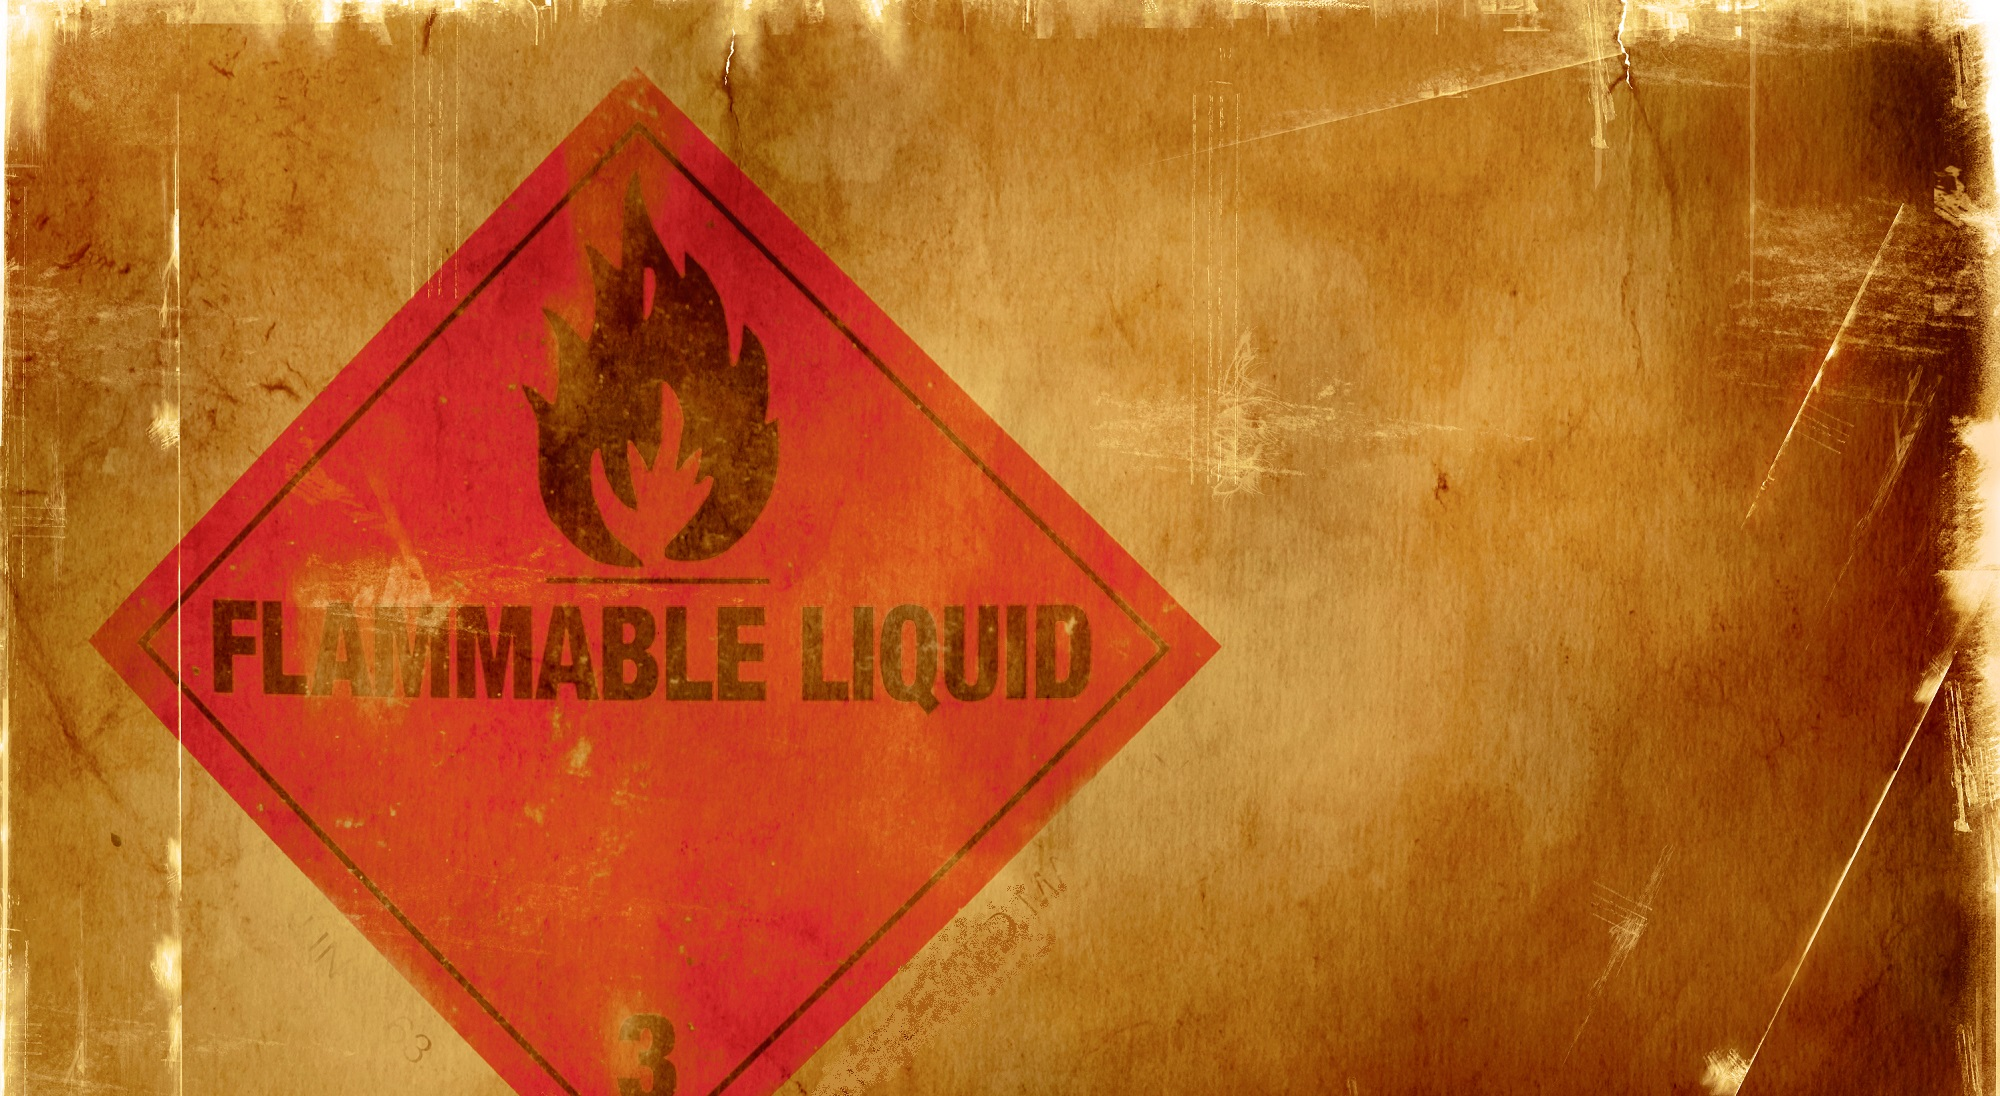 Things you need to know about fires that involve flammable liquids (Part 3) Fire combustion and escalation.